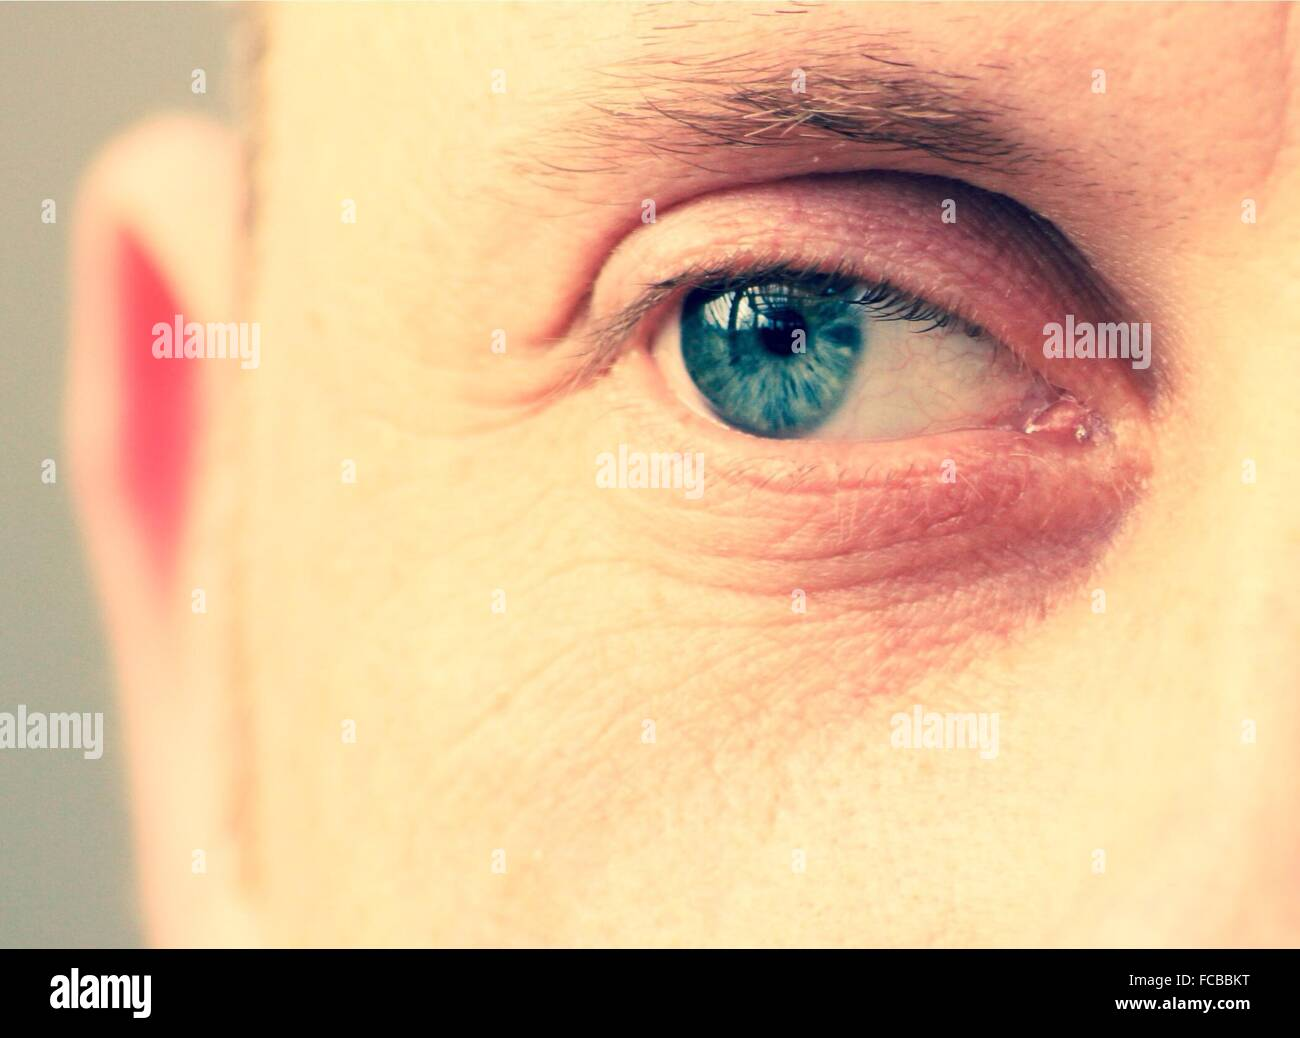 Extreme Close Up Of Male Eye - Stock Image